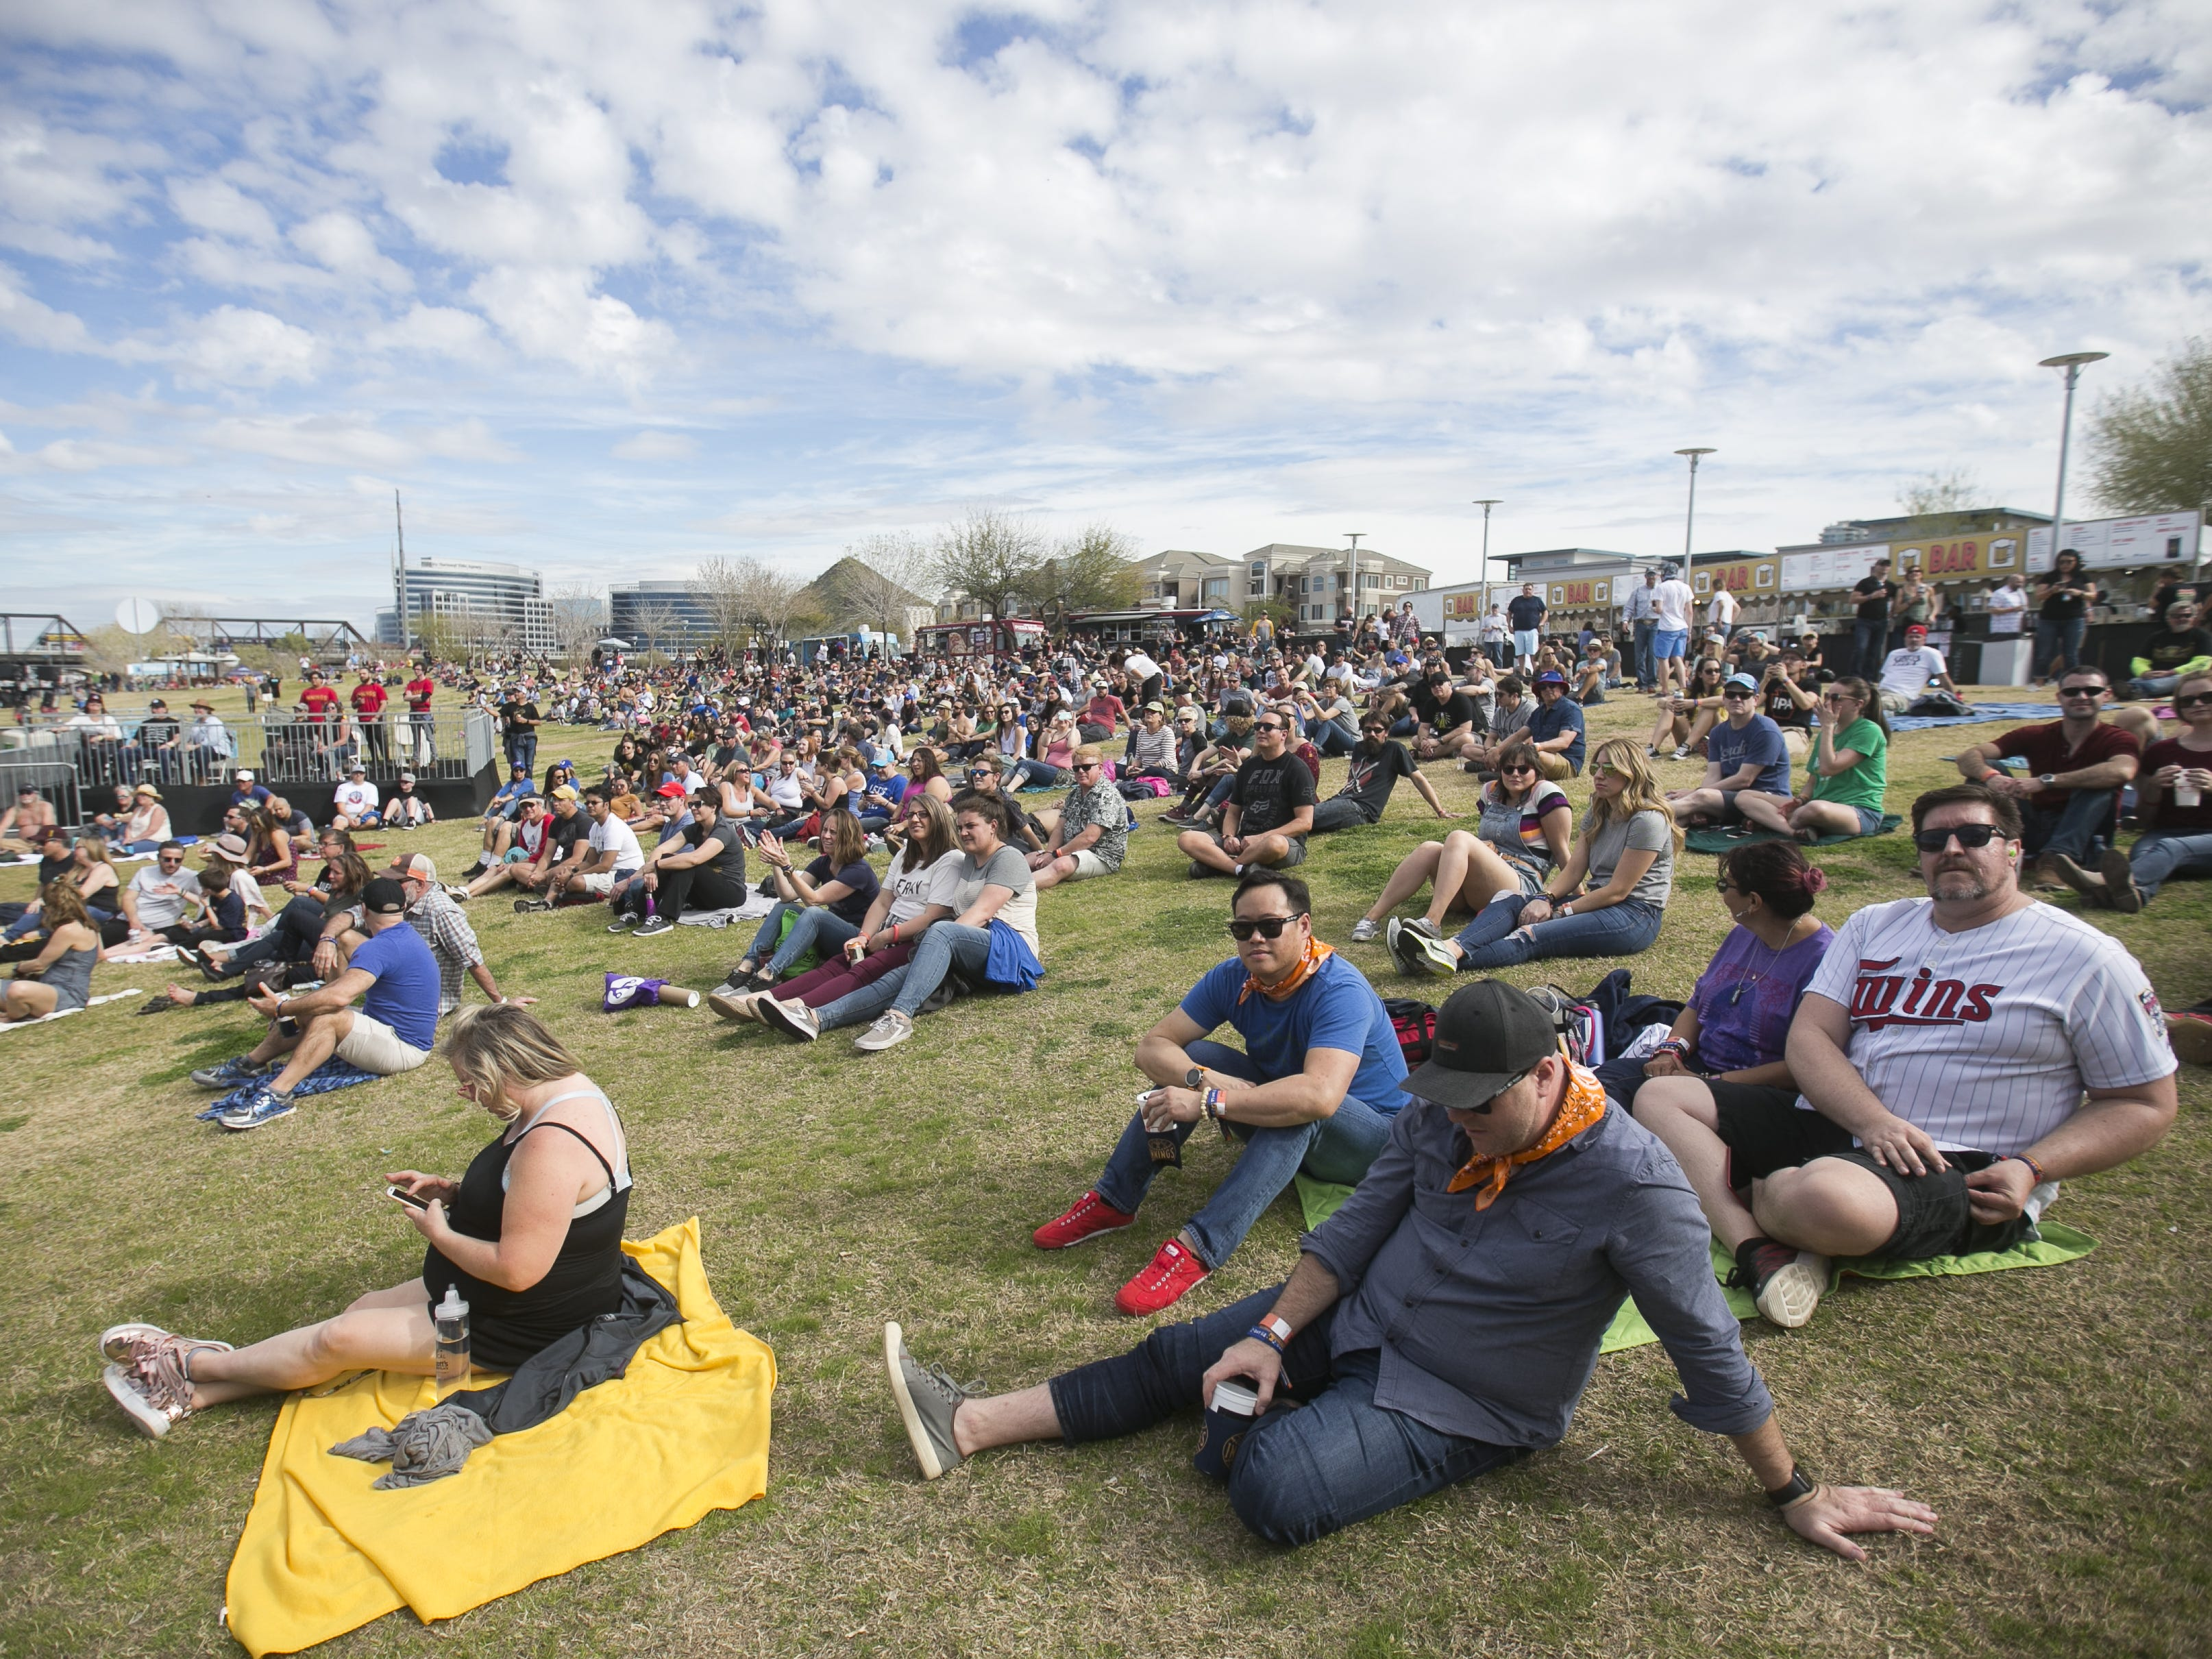 Festival goers watch Black Pistol Fire perform at the Innings Festival at Tempe Beach Park on Saturday, March 2, 2019.